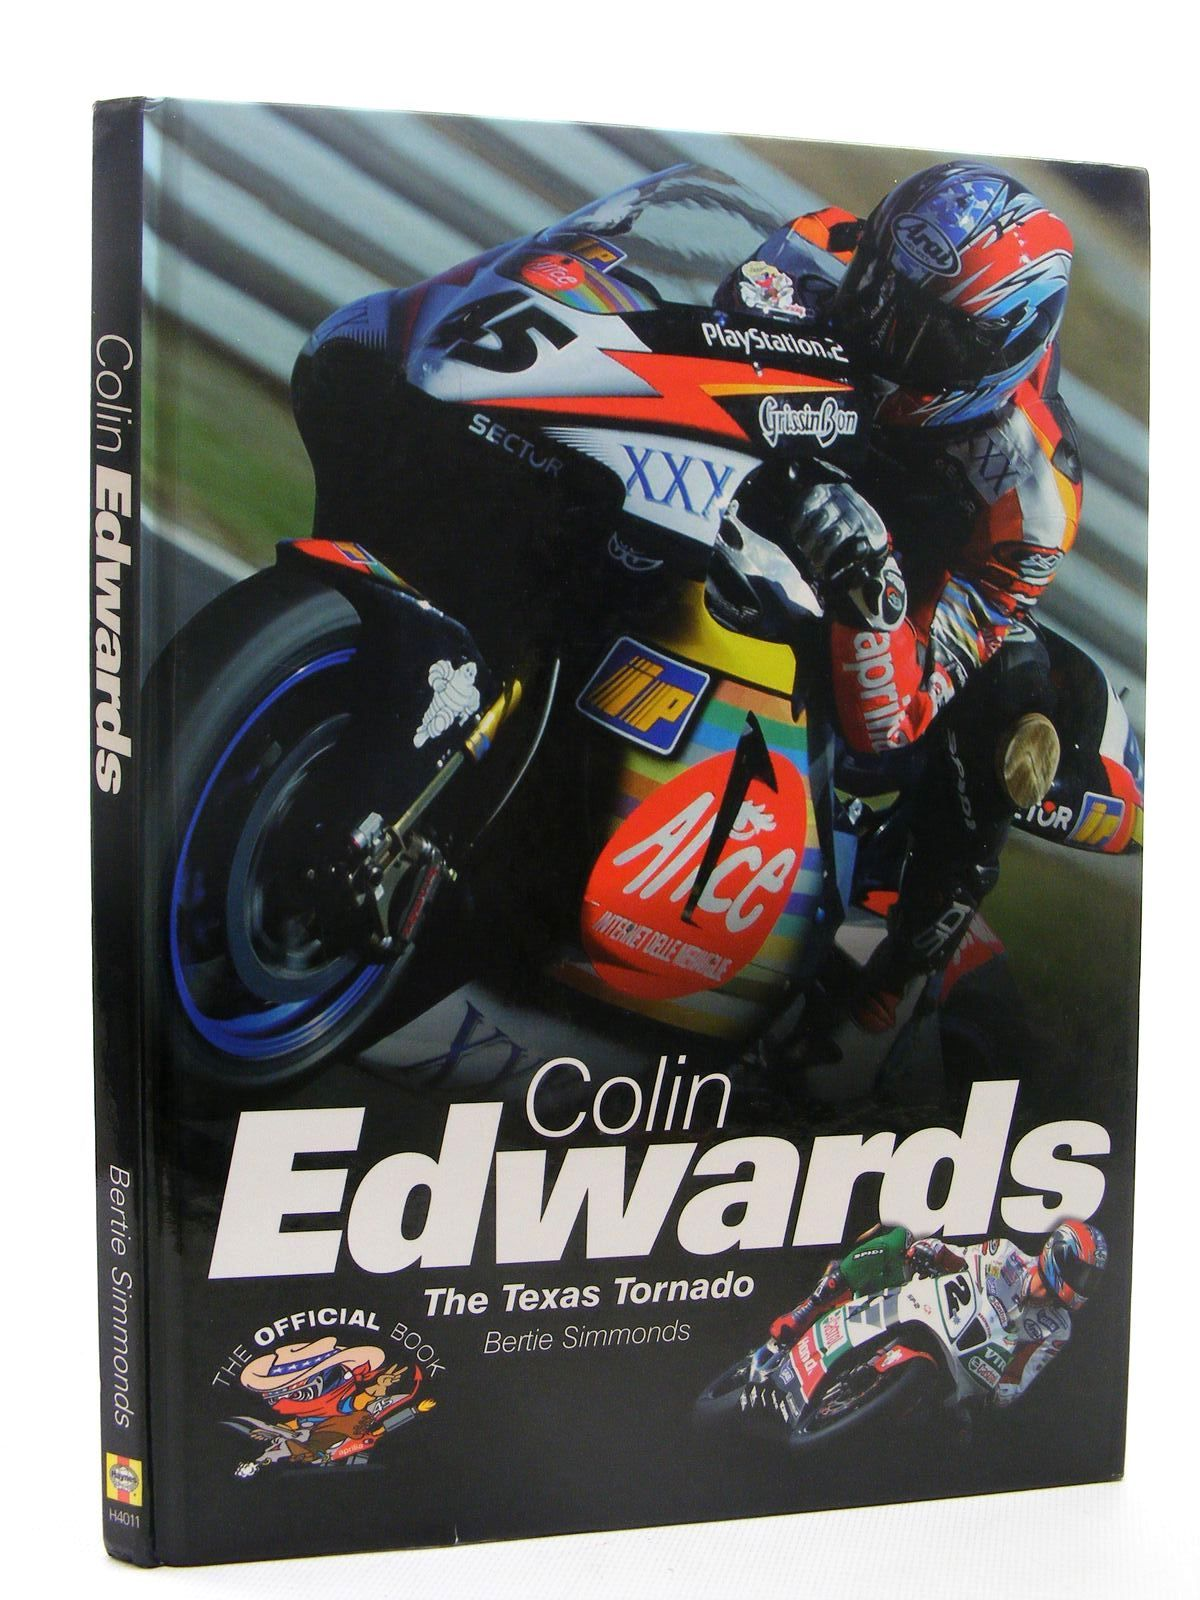 Photo of COLIN EDWARDS THE TEXAS TORNADO written by Simmonds, Bertie published by Haynes Publishing Group (STOCK CODE: 1610306)  for sale by Stella & Rose's Books